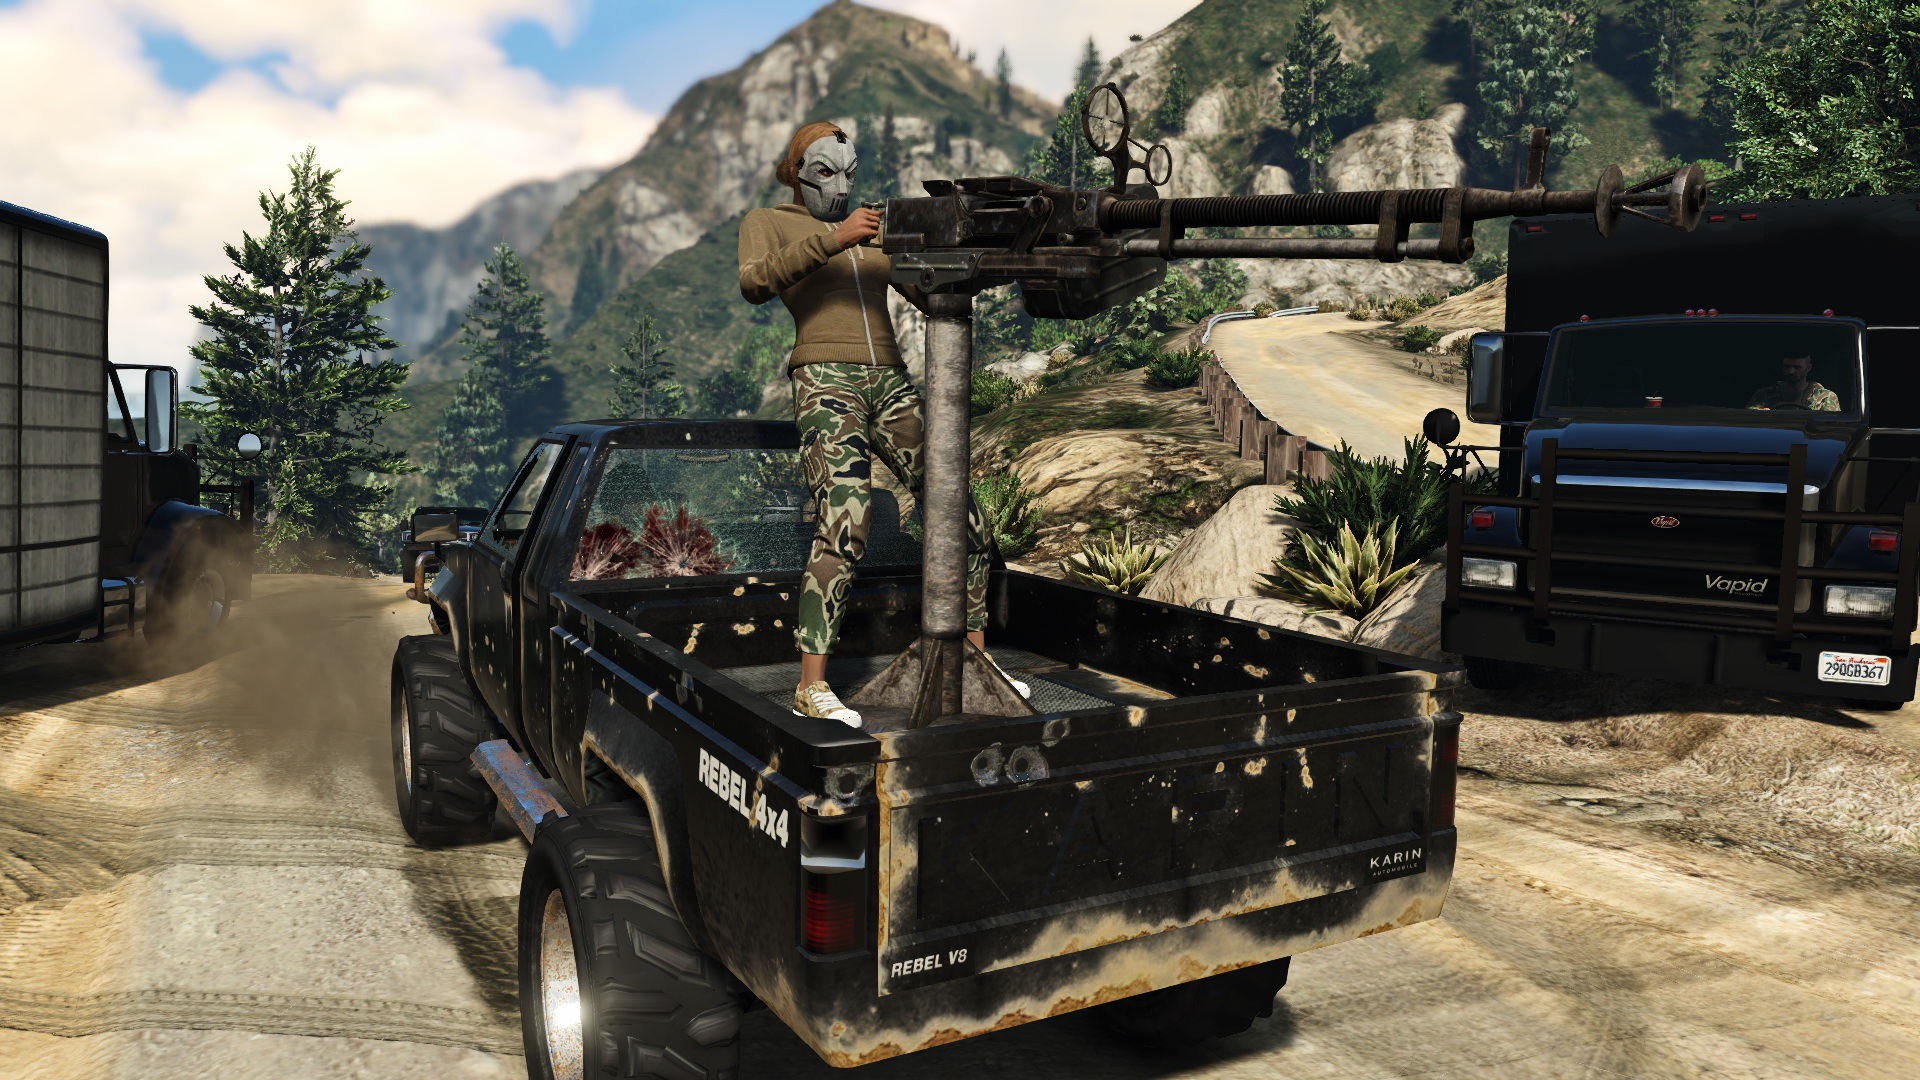 Gta online servers are down for maintenance vg247